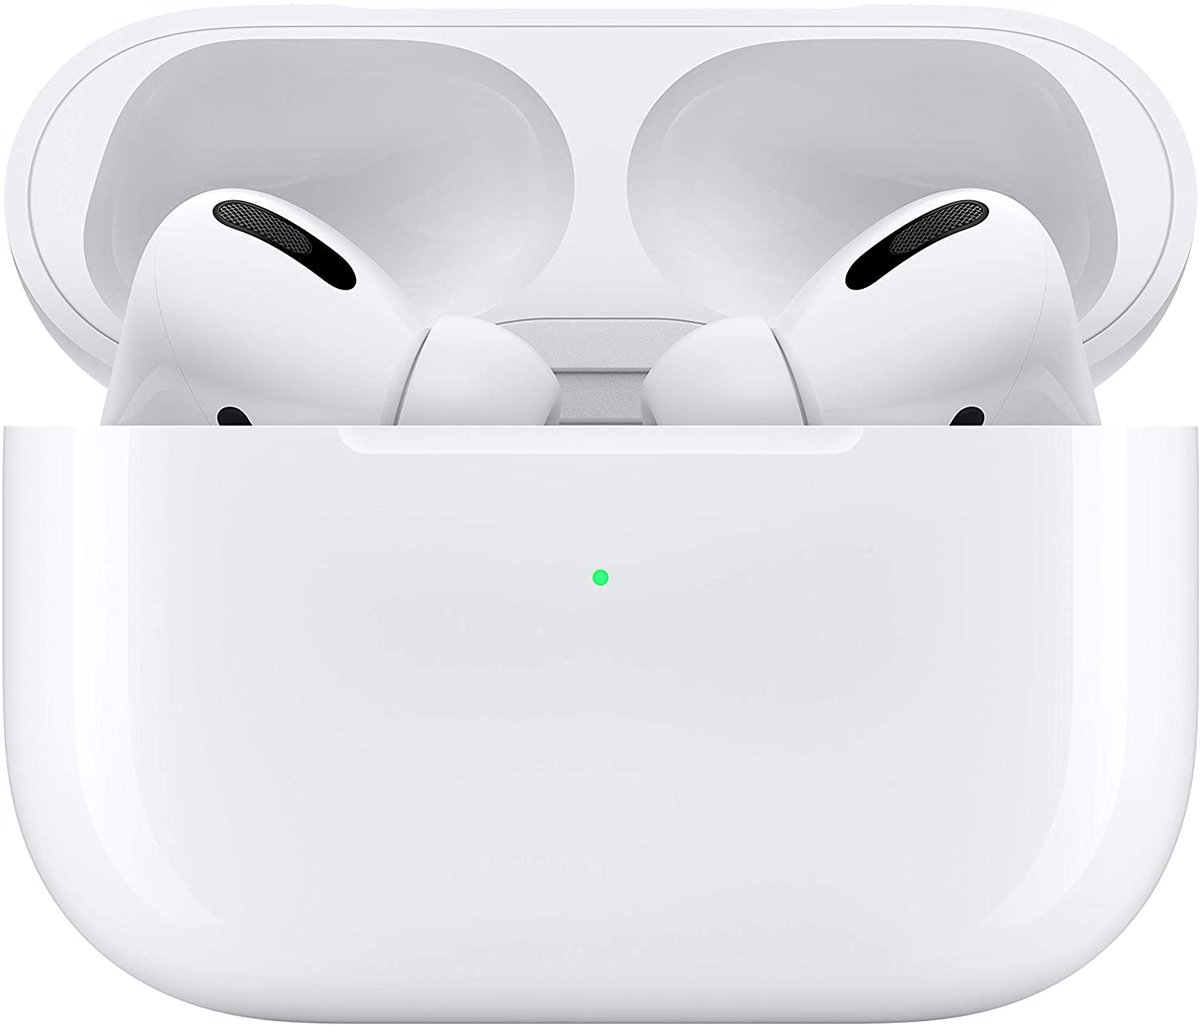 WILLL SELL OUTT!!  NEW Apple Airpods Pros for $219.99!!!  -Under retail, retail $250!!!  https://t.co/CWCWdBvvNa https://t.co/e6o2ZTKOtz